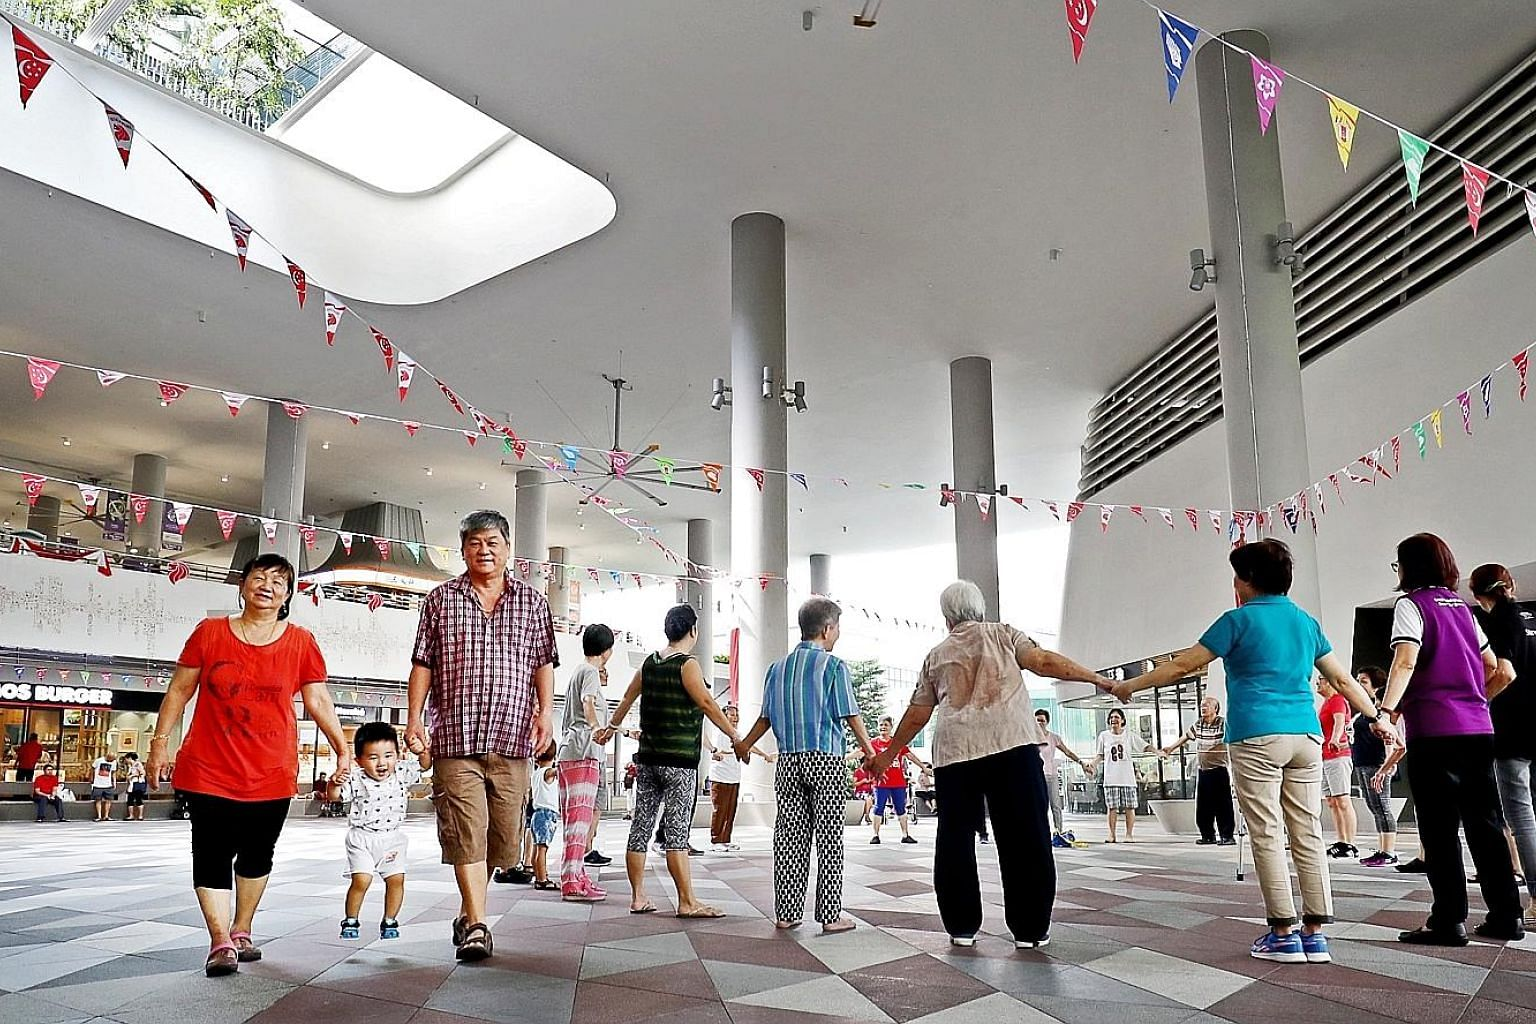 The Kampung Admiralty concept is one that is of significance to efforts to accommodate the needs of vulnerable persons with dementia, creating a familiar and safe environment for them to age in place, say the writers.